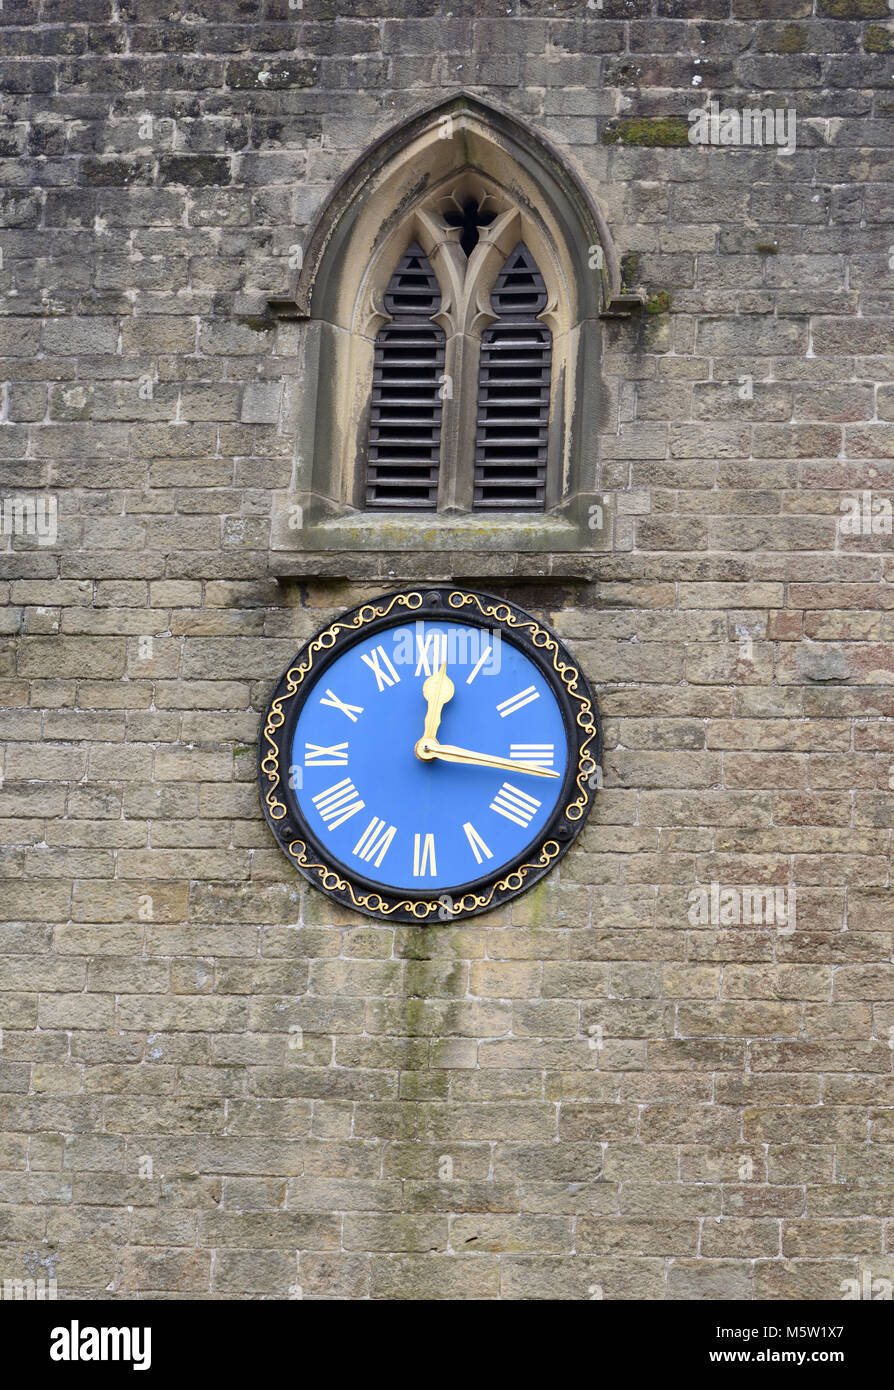 The blue clock face set in the stone tower of St Martin's Church shows quarter past twelve. Stoney Middleton, - Stock Image